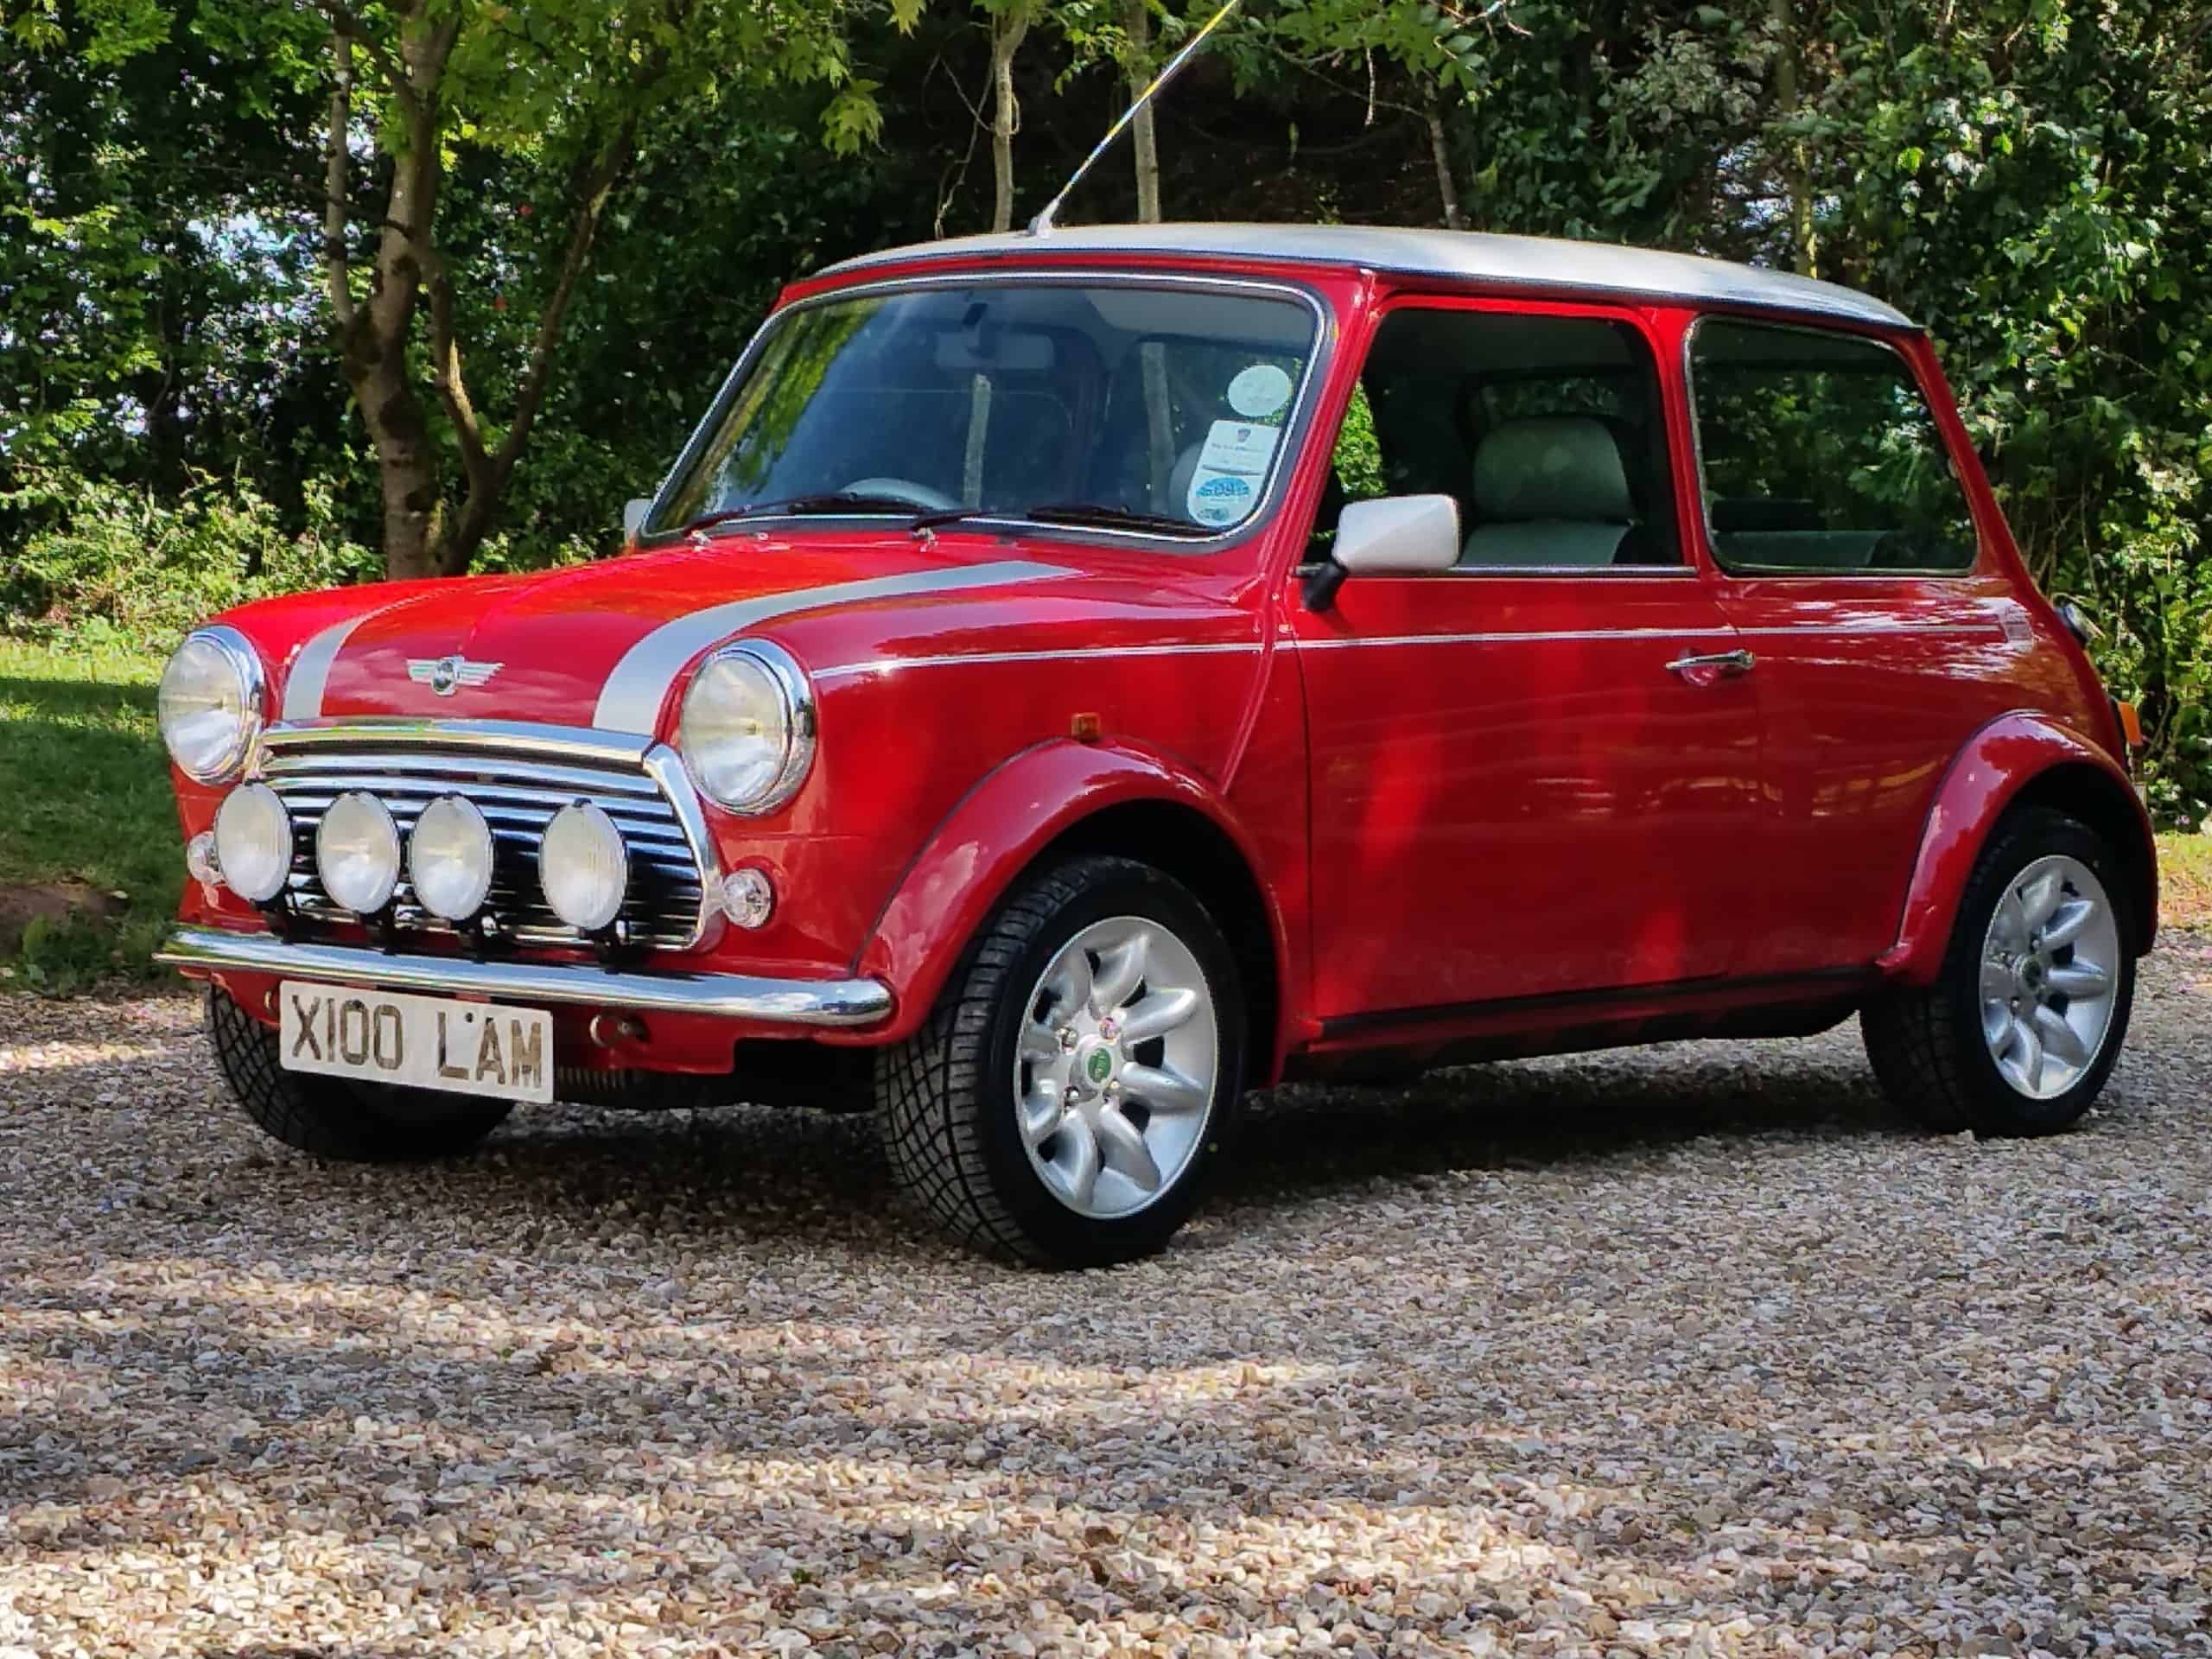 ** NOW SOLD ** Outstanding 2000 Mini Cooper Sport On 1950 Miles From New